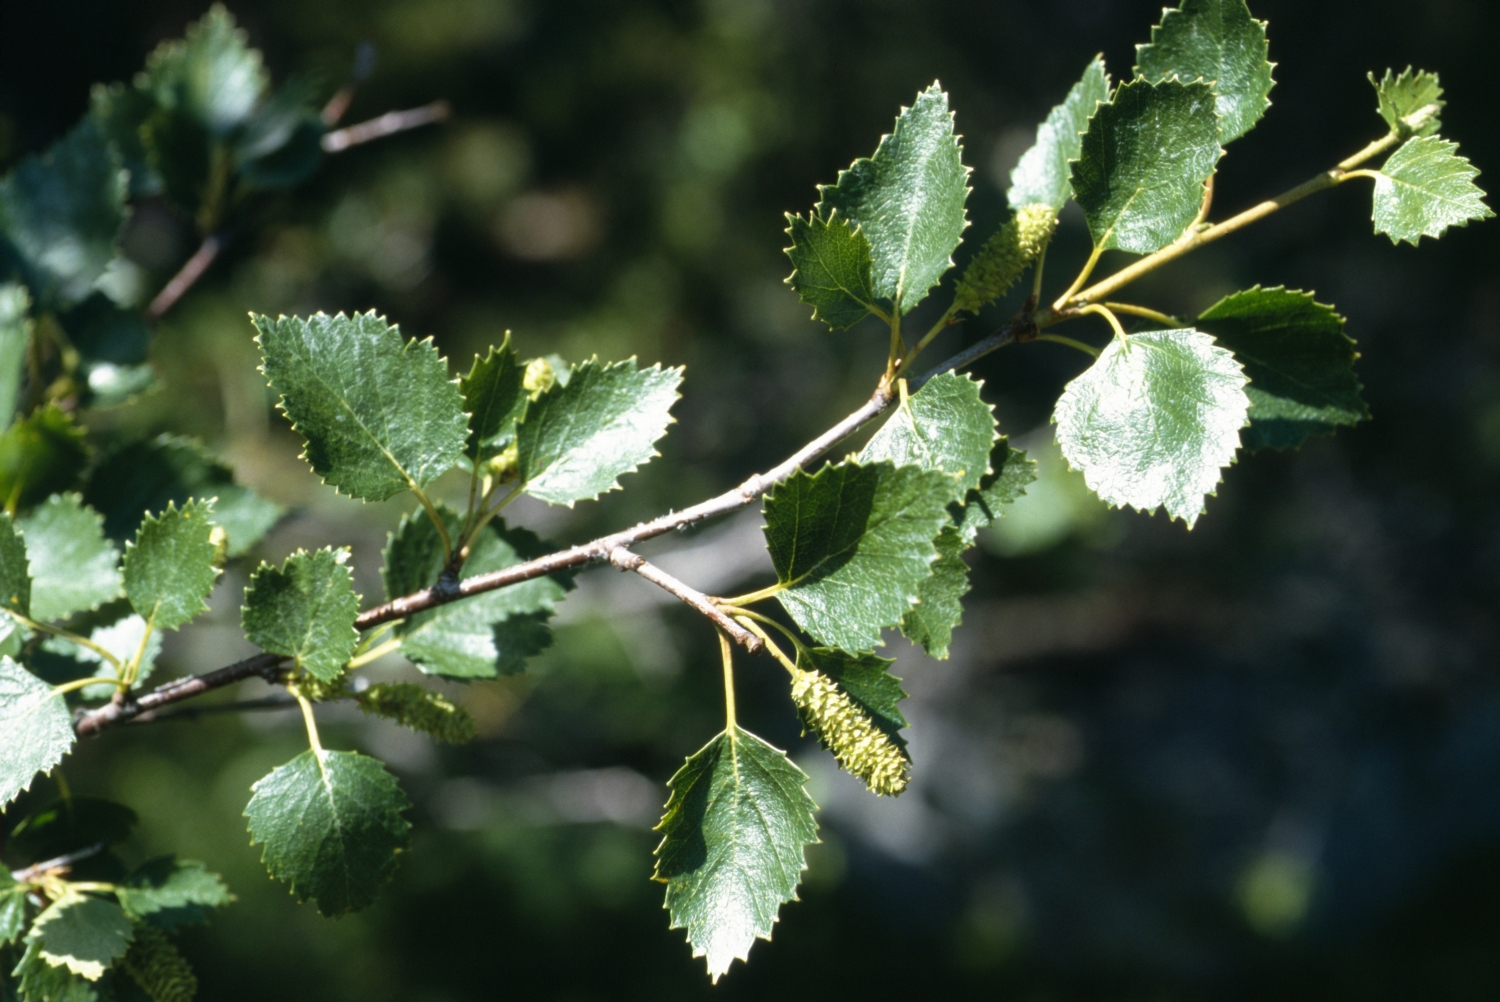 Downy birch leaves